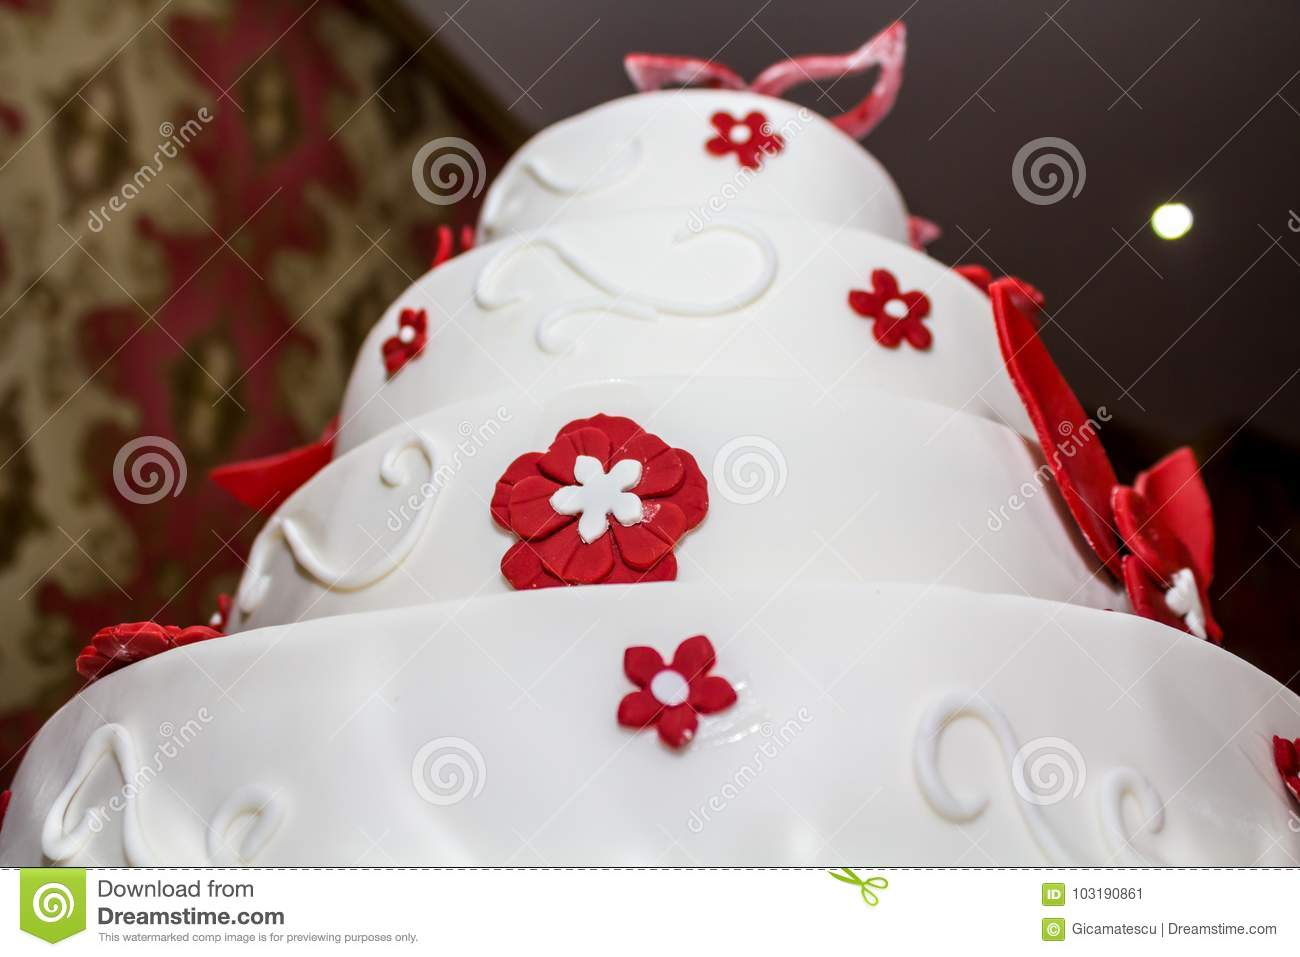 Wedding marzipan cake stock image. Image of festive - 103190861